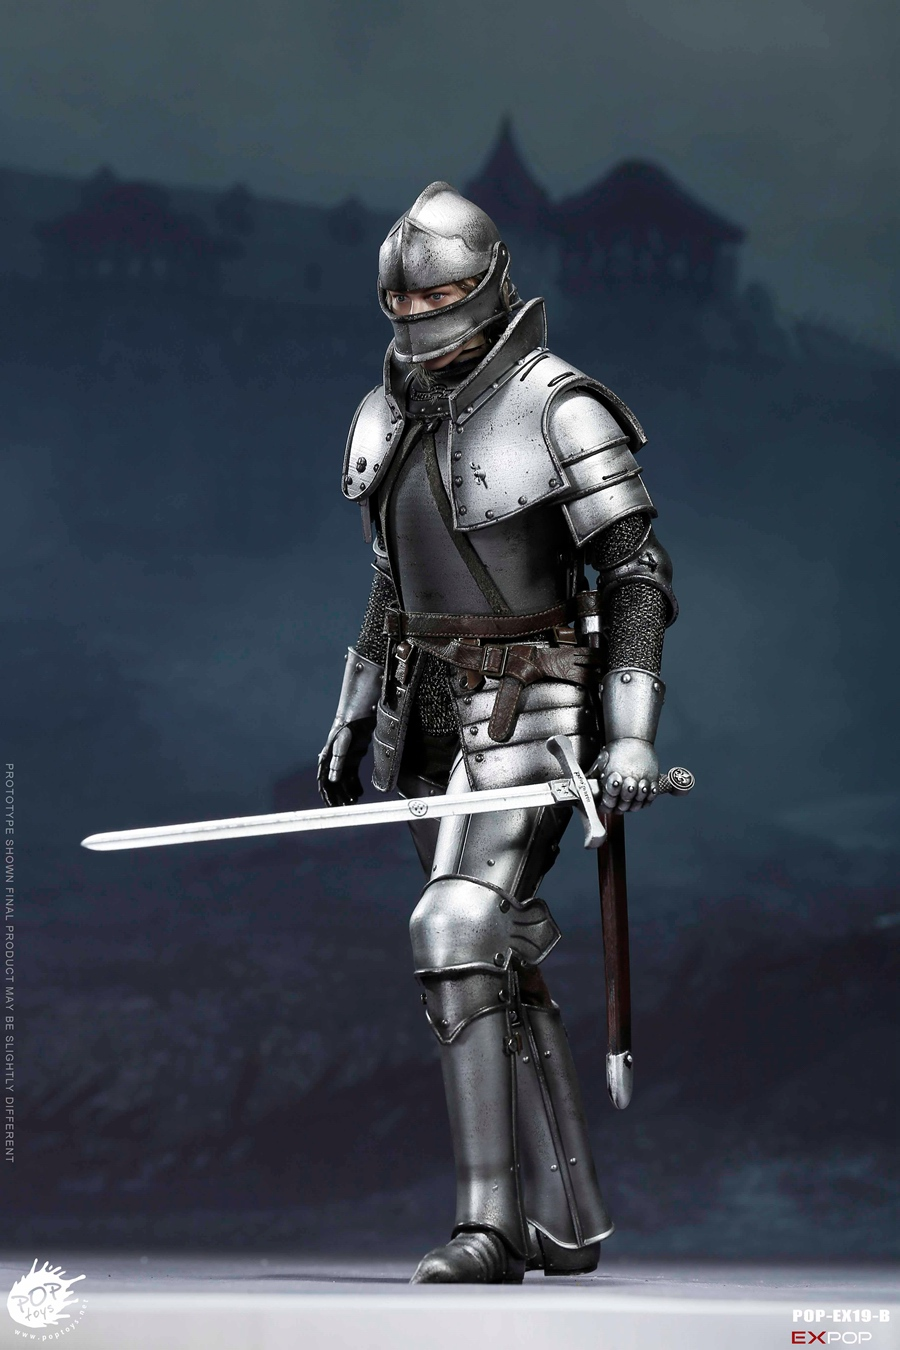 knight - NEW PRODUCT: POPTOYS New Products: 1/6 St. Knights - Assault Edition & Triumph Edition & Iron Armor (POP-EX19 ABC) 347